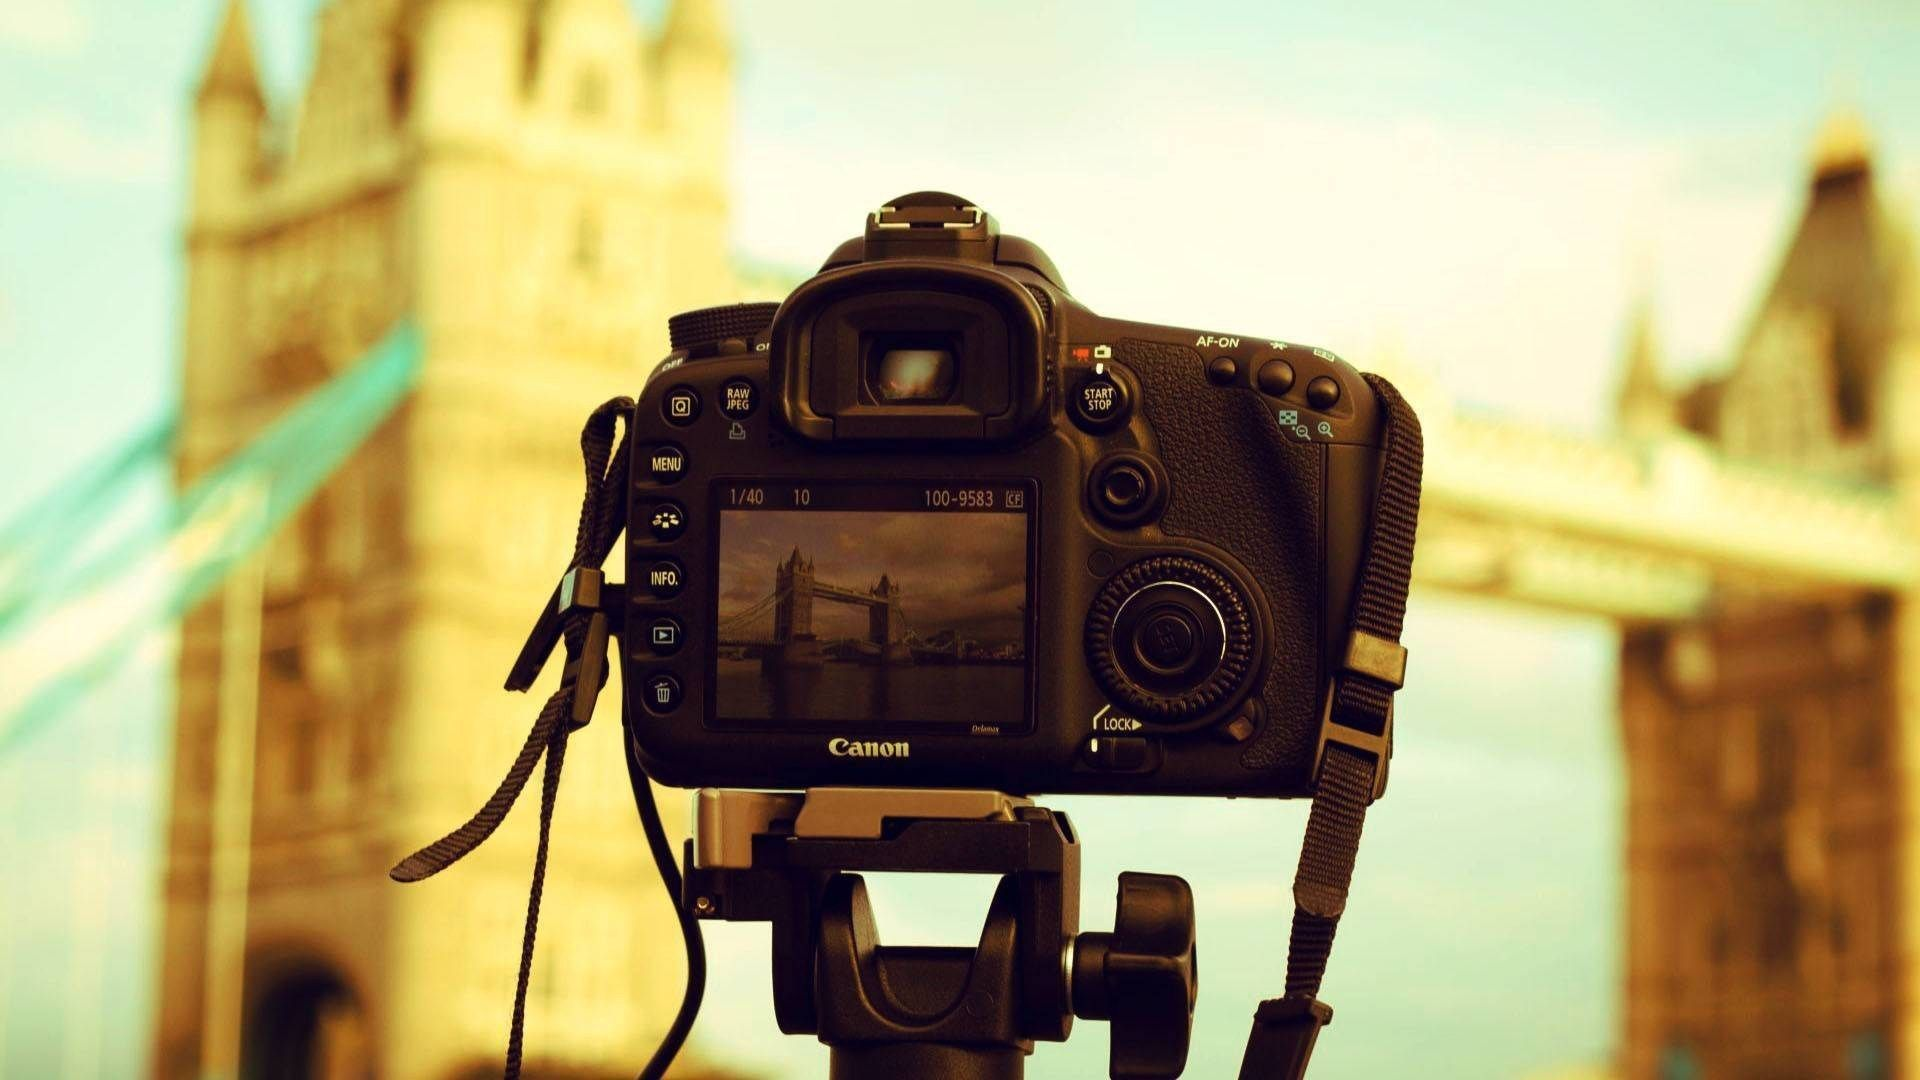 Hd wallpaper camera - Find This Pin And More On Canon Dslr Hd Wallpapers